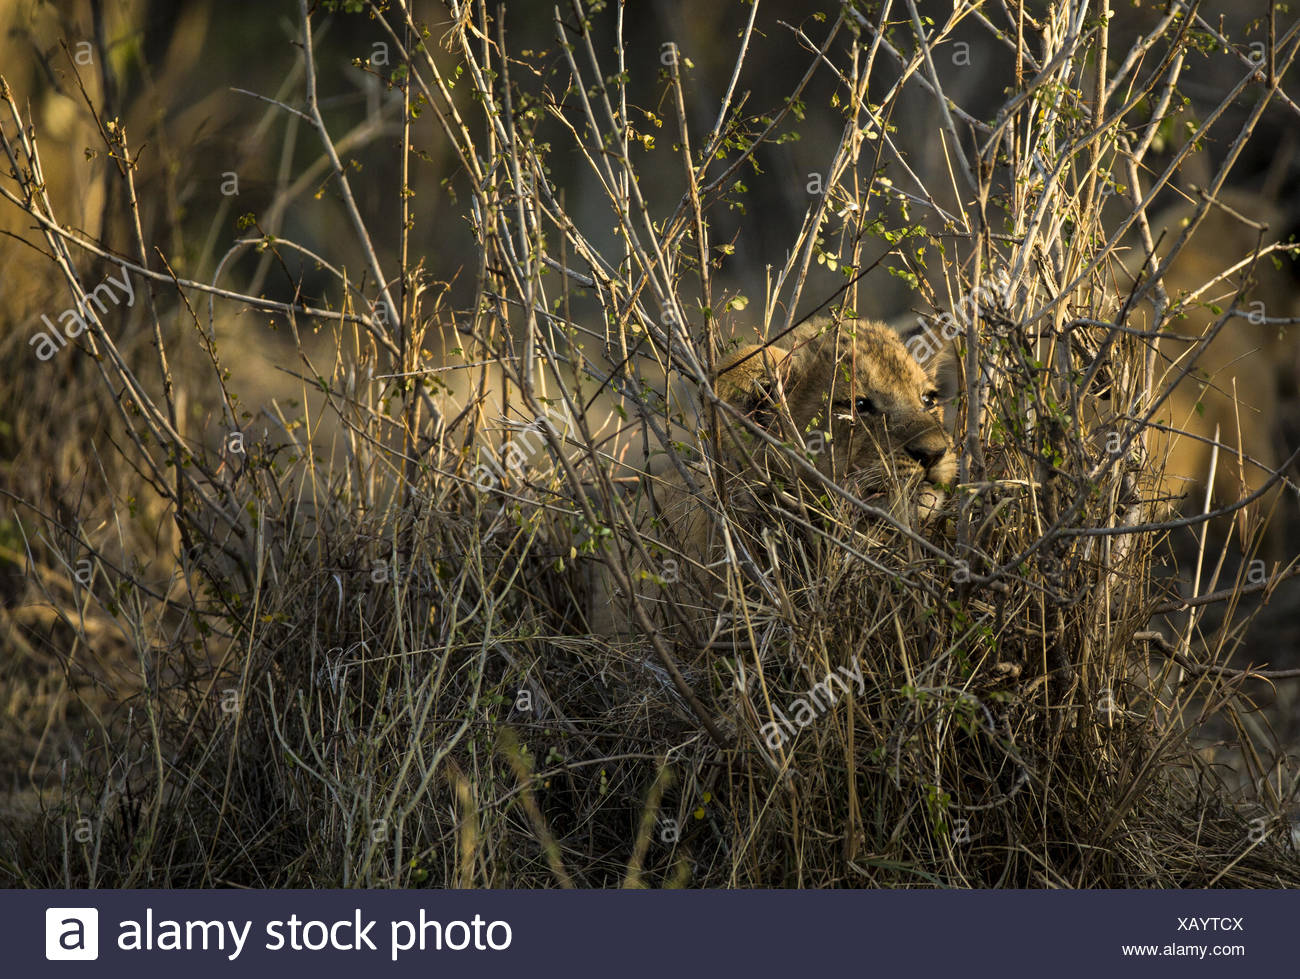 A lion, Panthera leo, cub hides in the long grass. - Stock Image